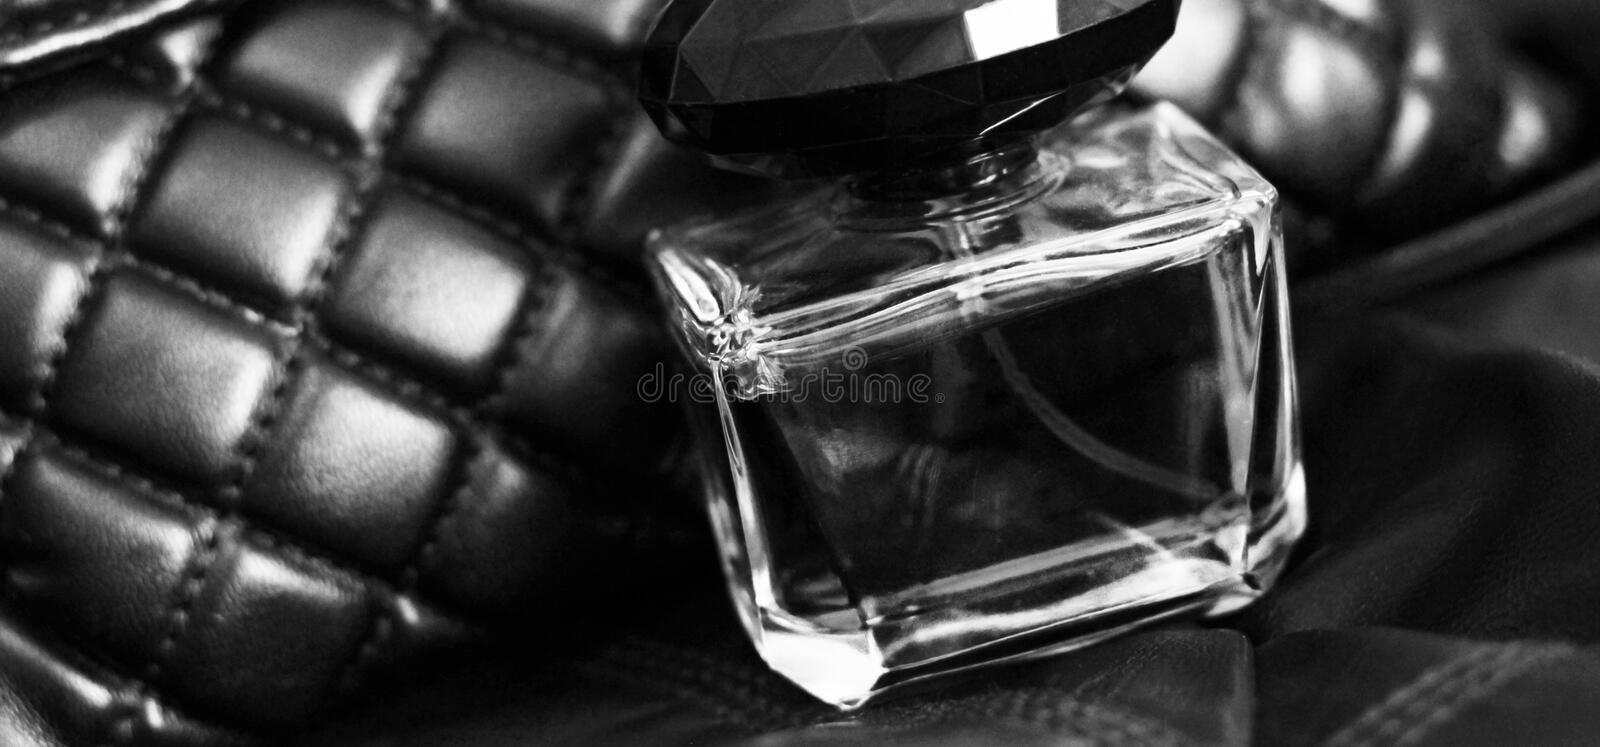 Perfume in glass on leather bag, black and white royalty free stock images